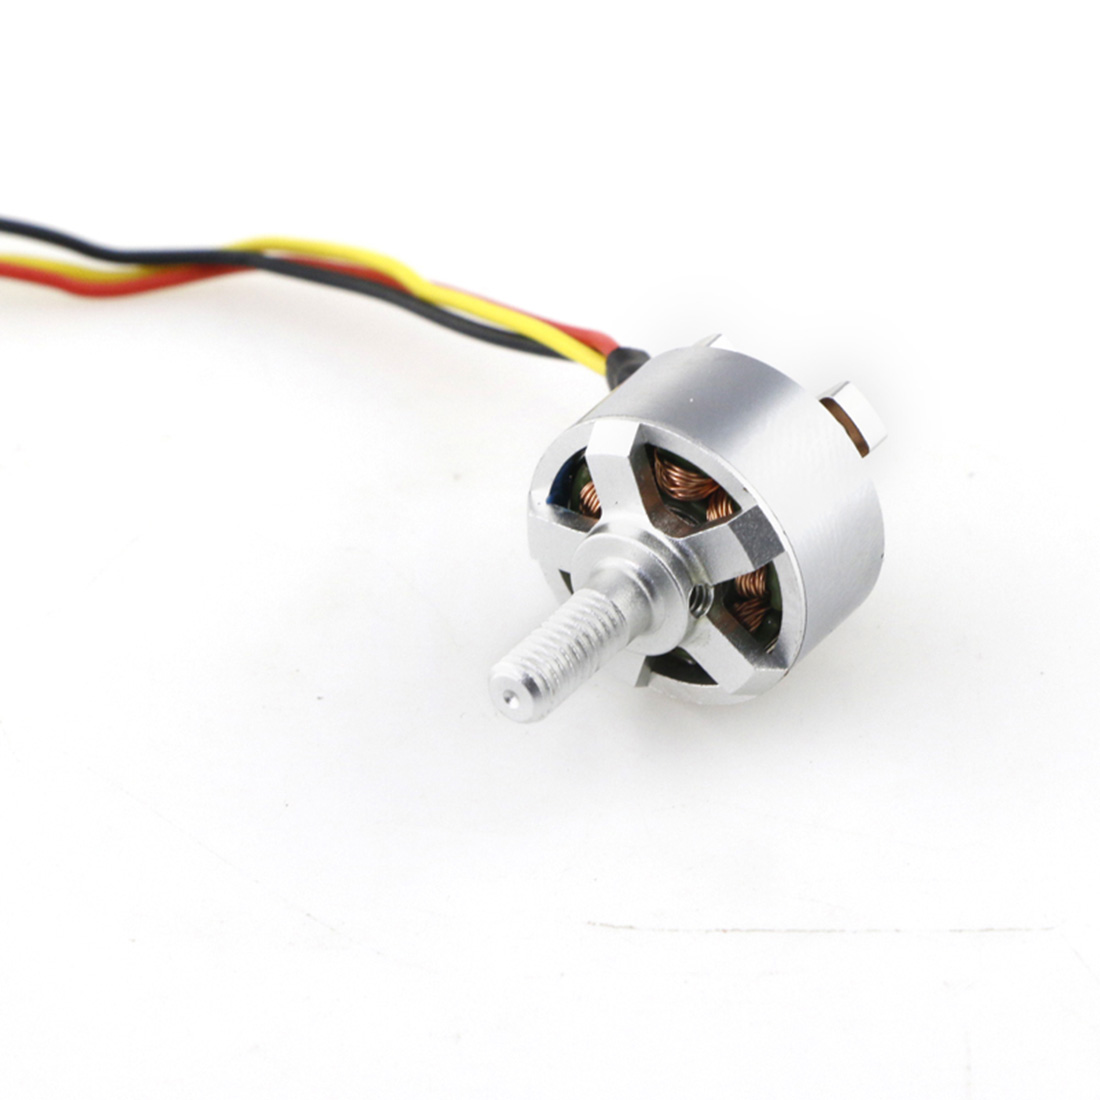 MJX Bugs 3 Mini Parts 1306 2750KV Brushless Motor CW CCW for MJX B3 Racing Drone